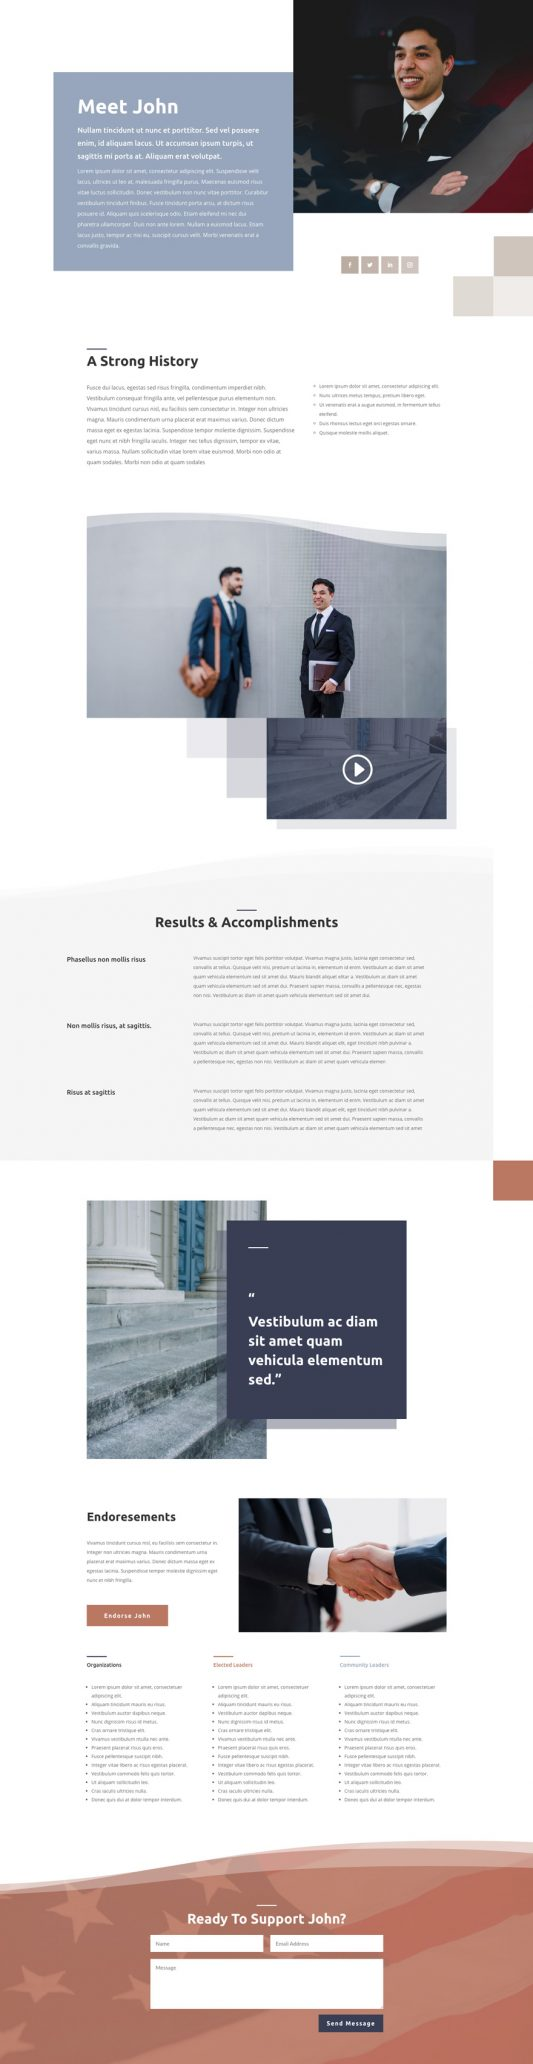 Political Candidate Web Design 1